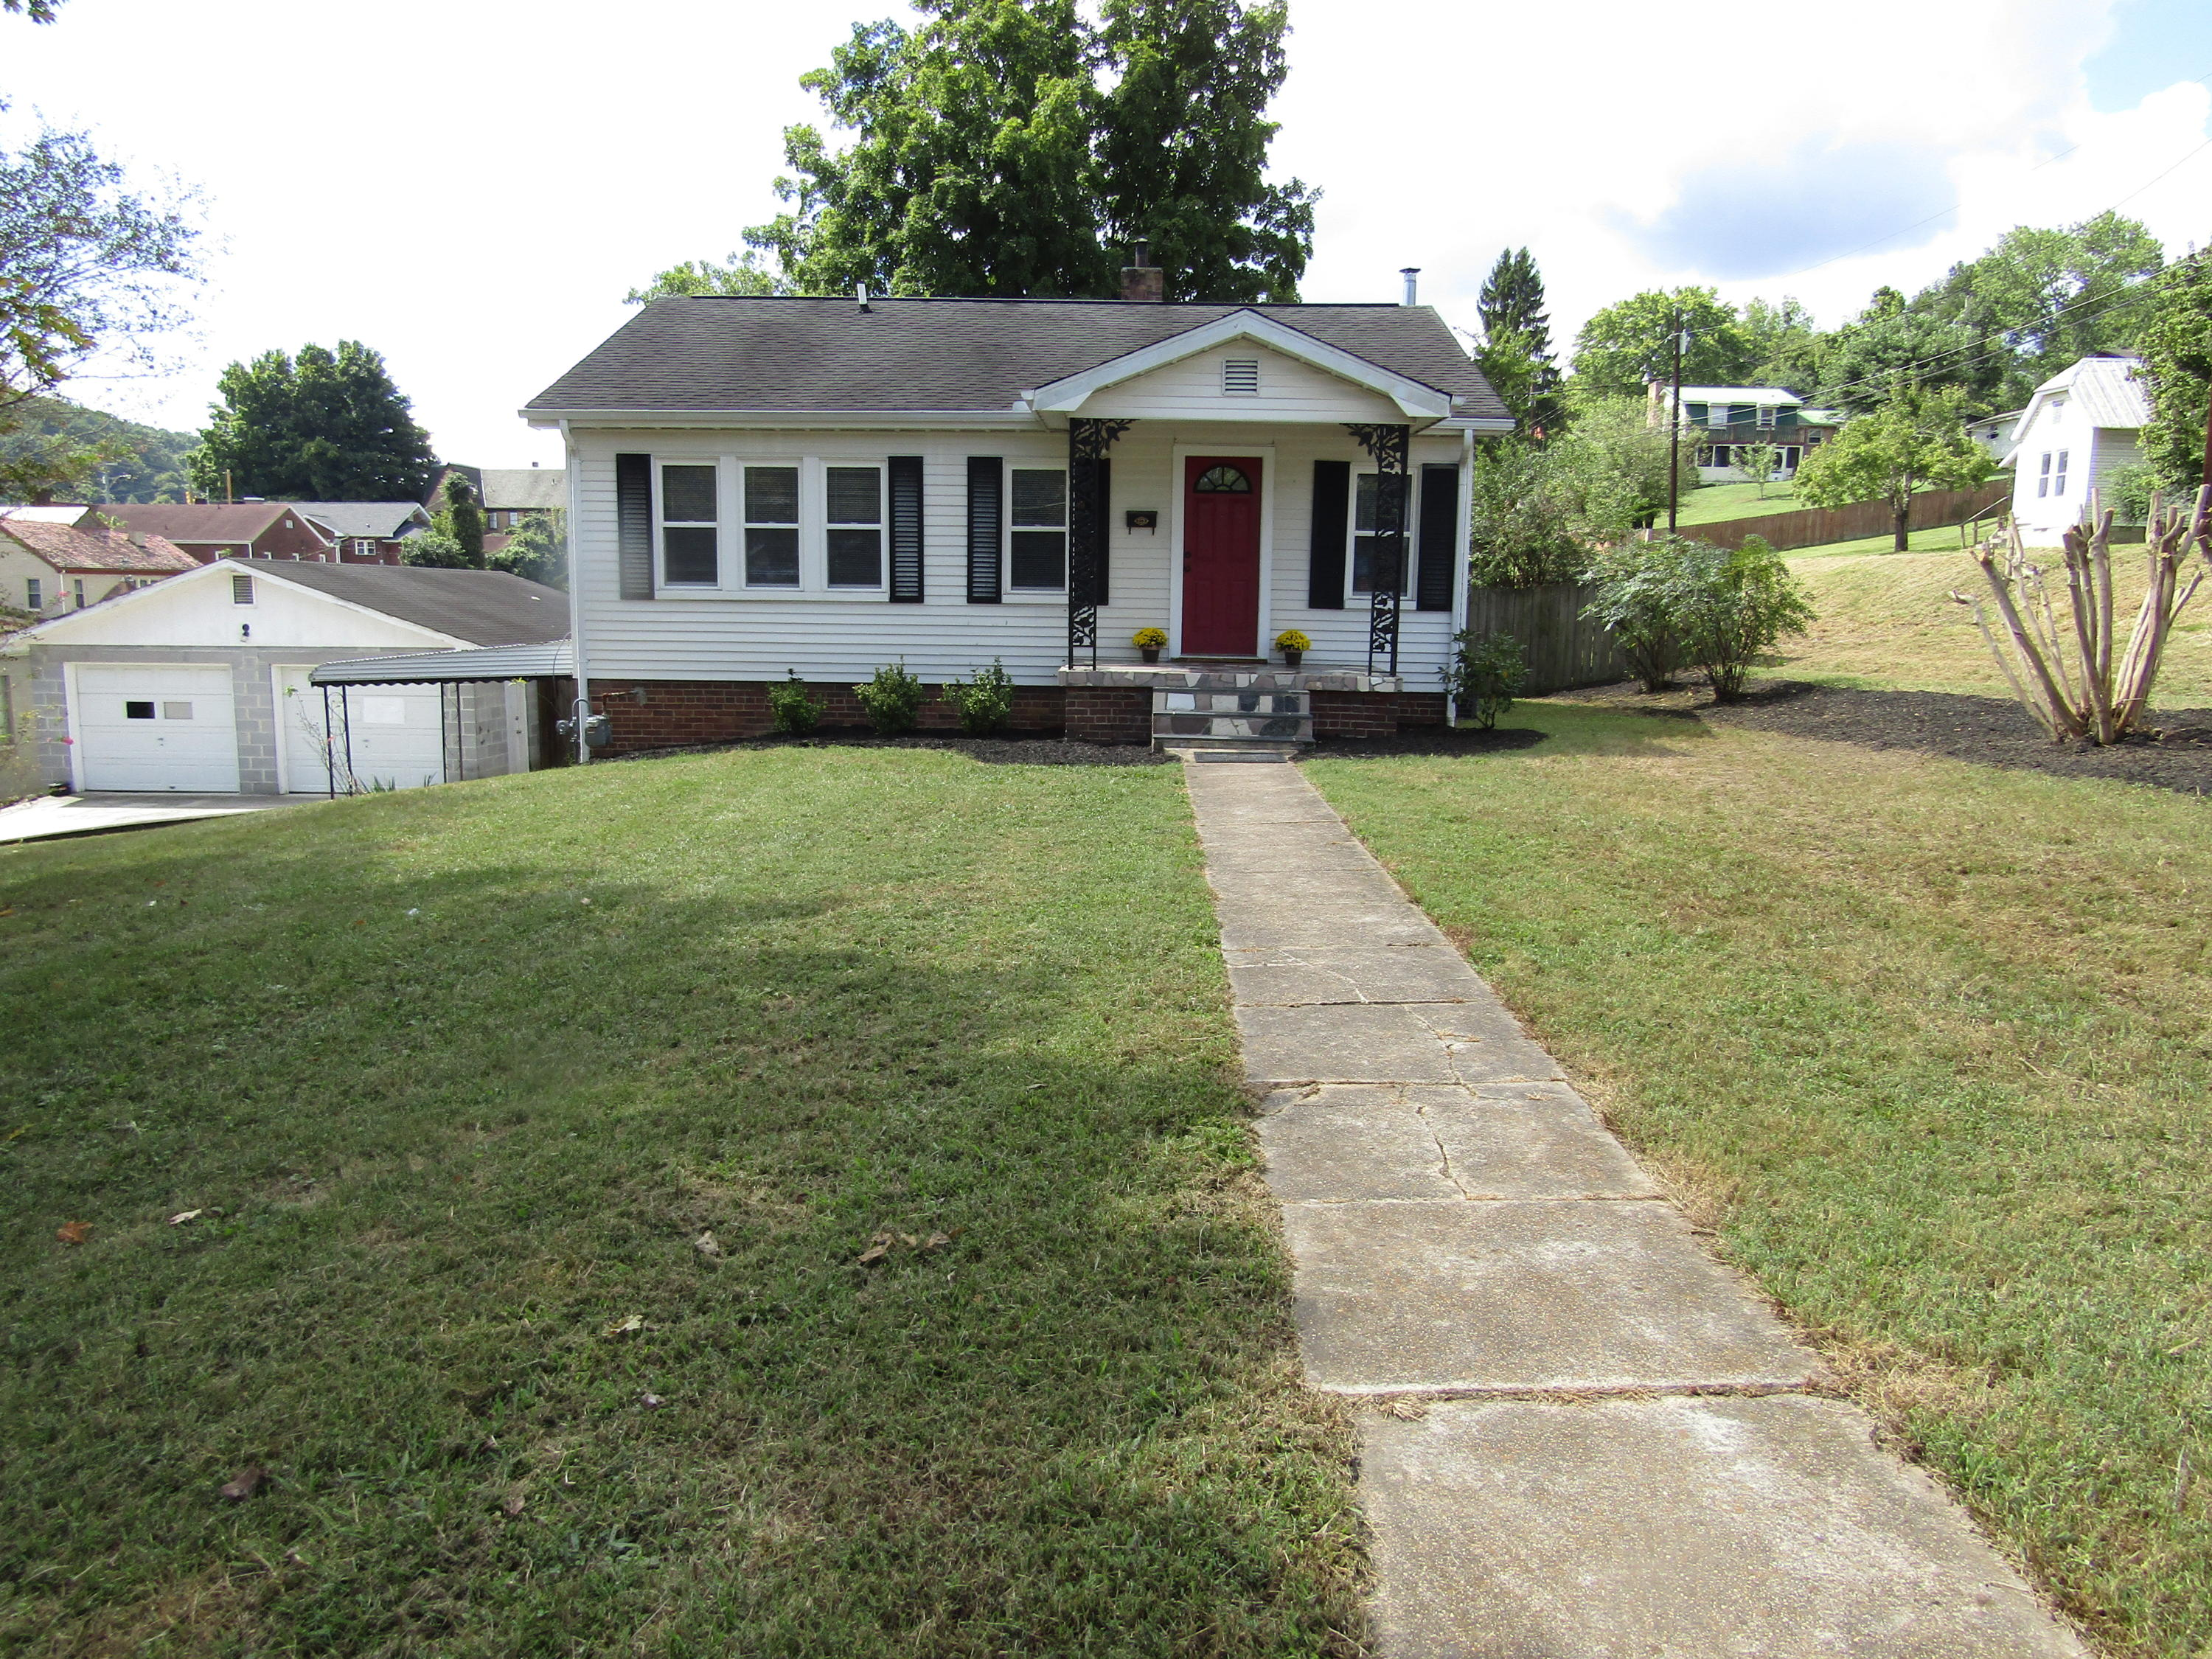 110 N 7th St, Lafollette, TN 37766